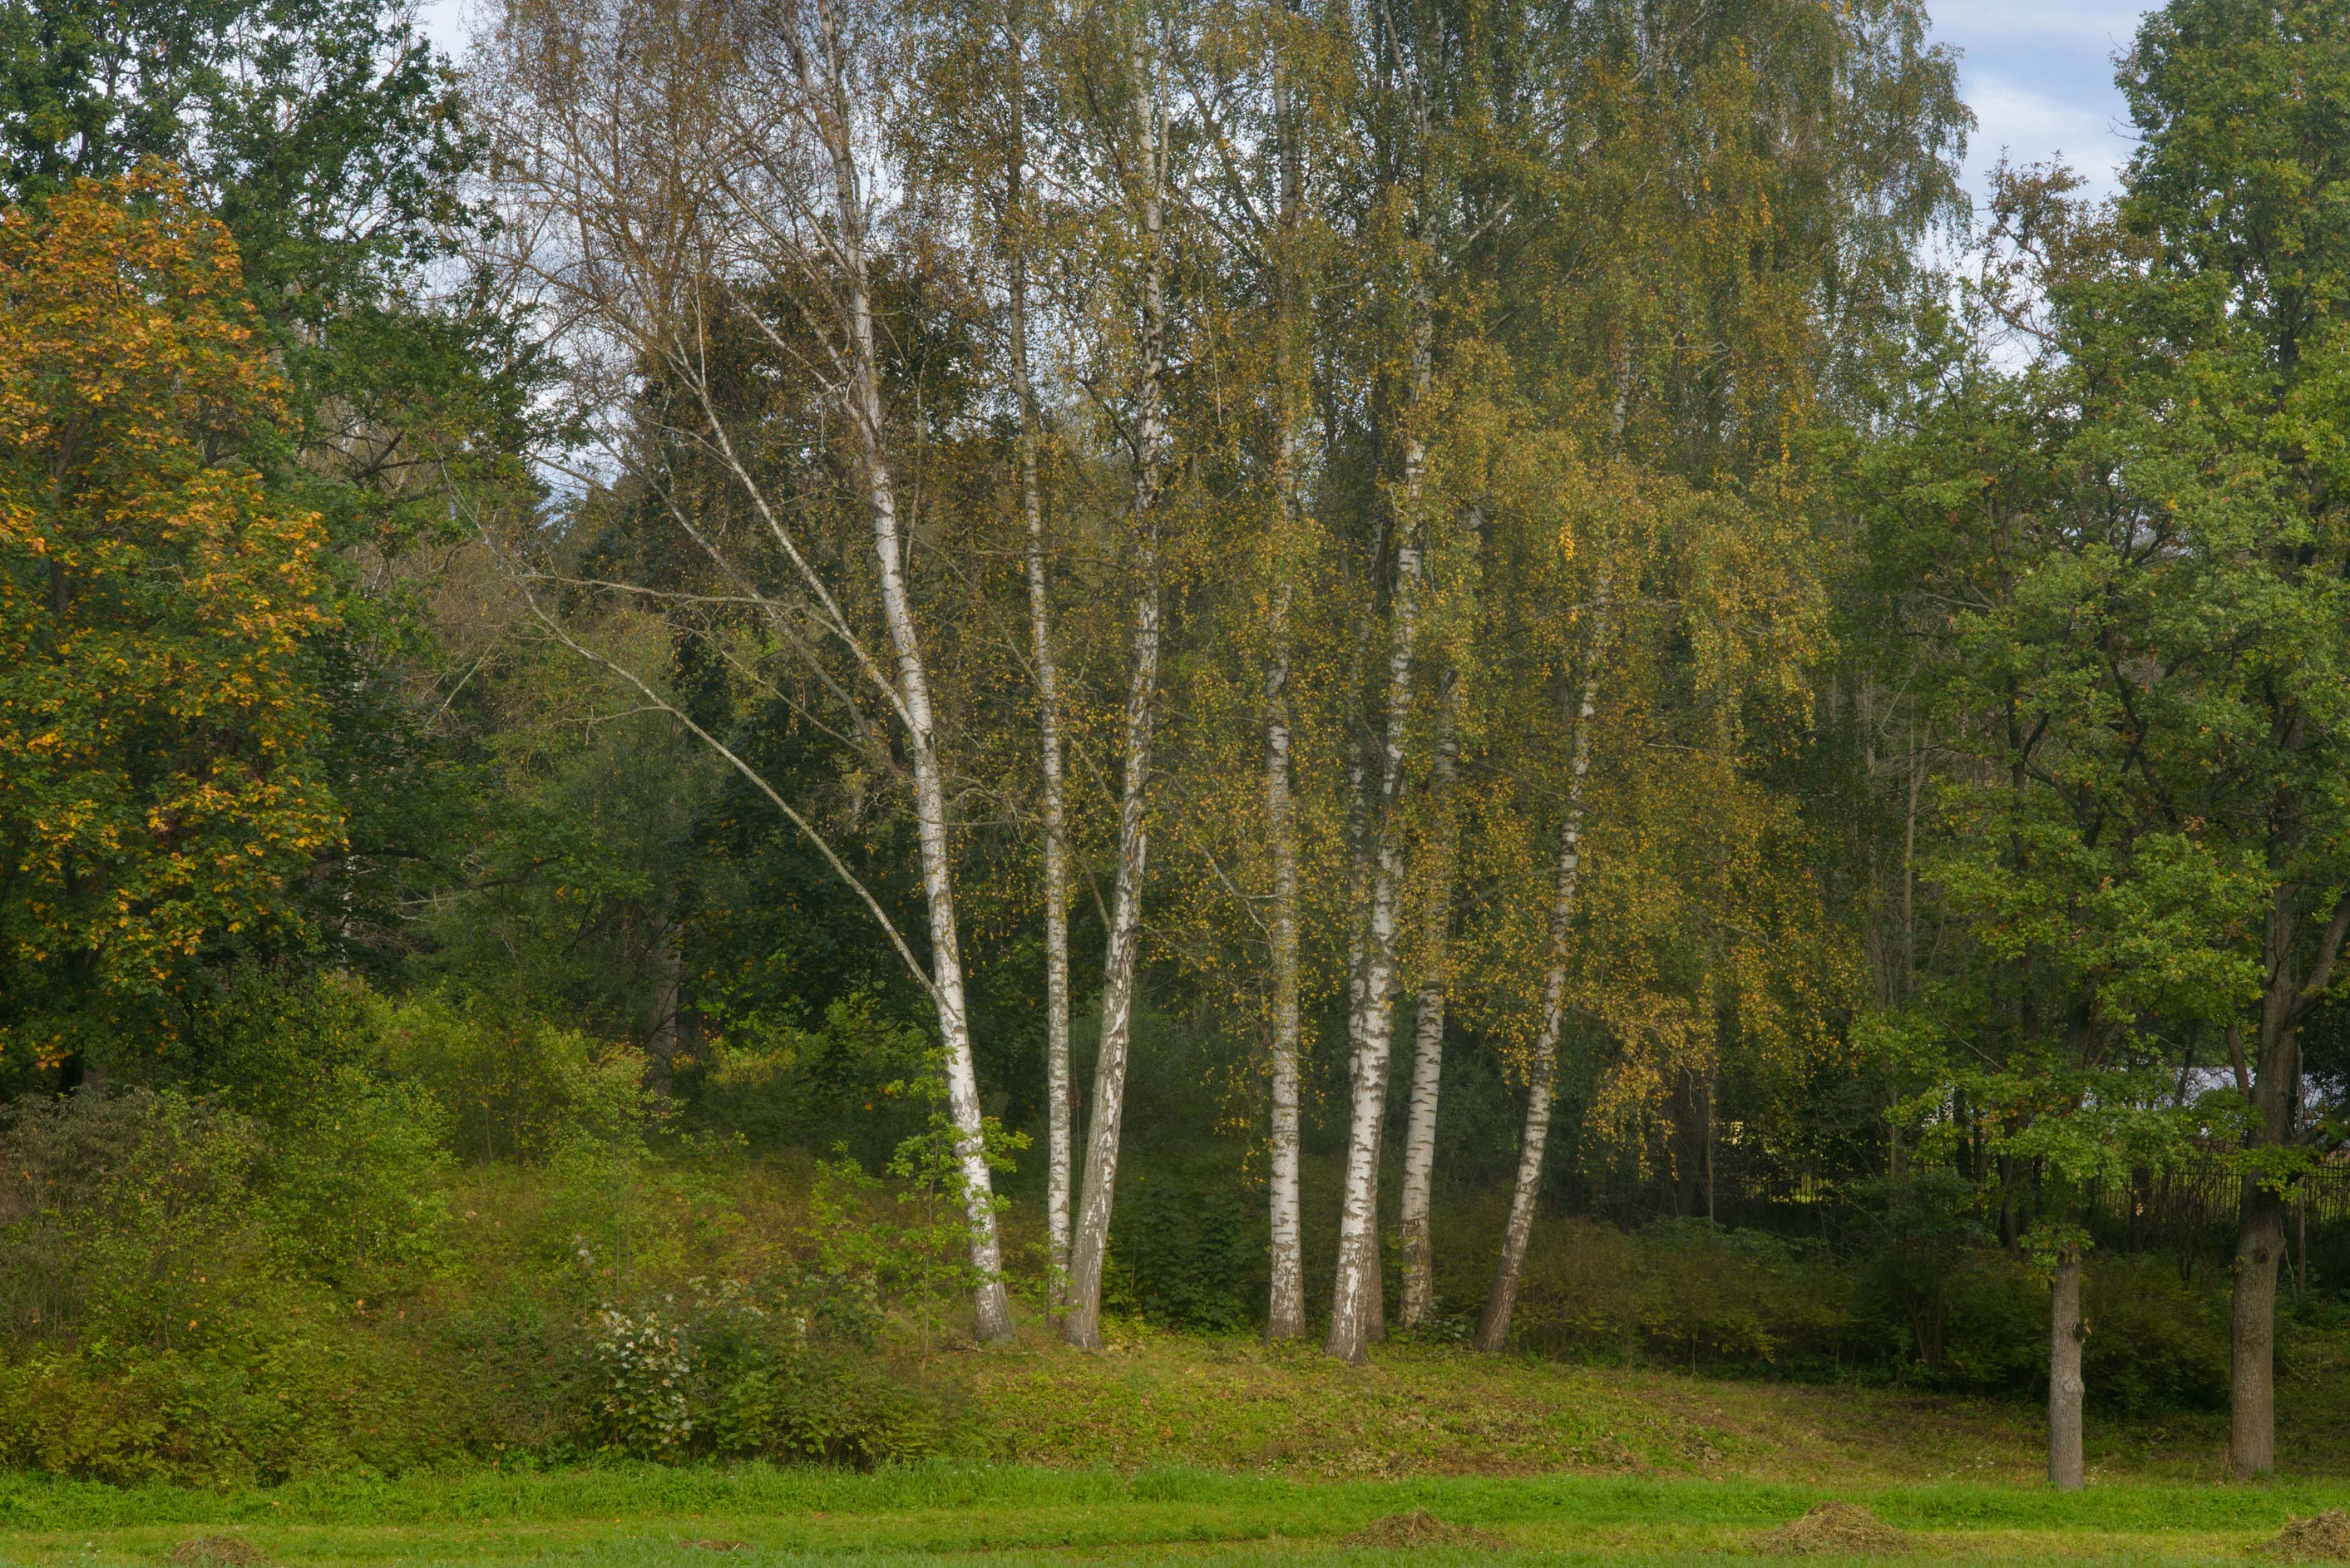 slideshow 190802 birches near slavyanka river in